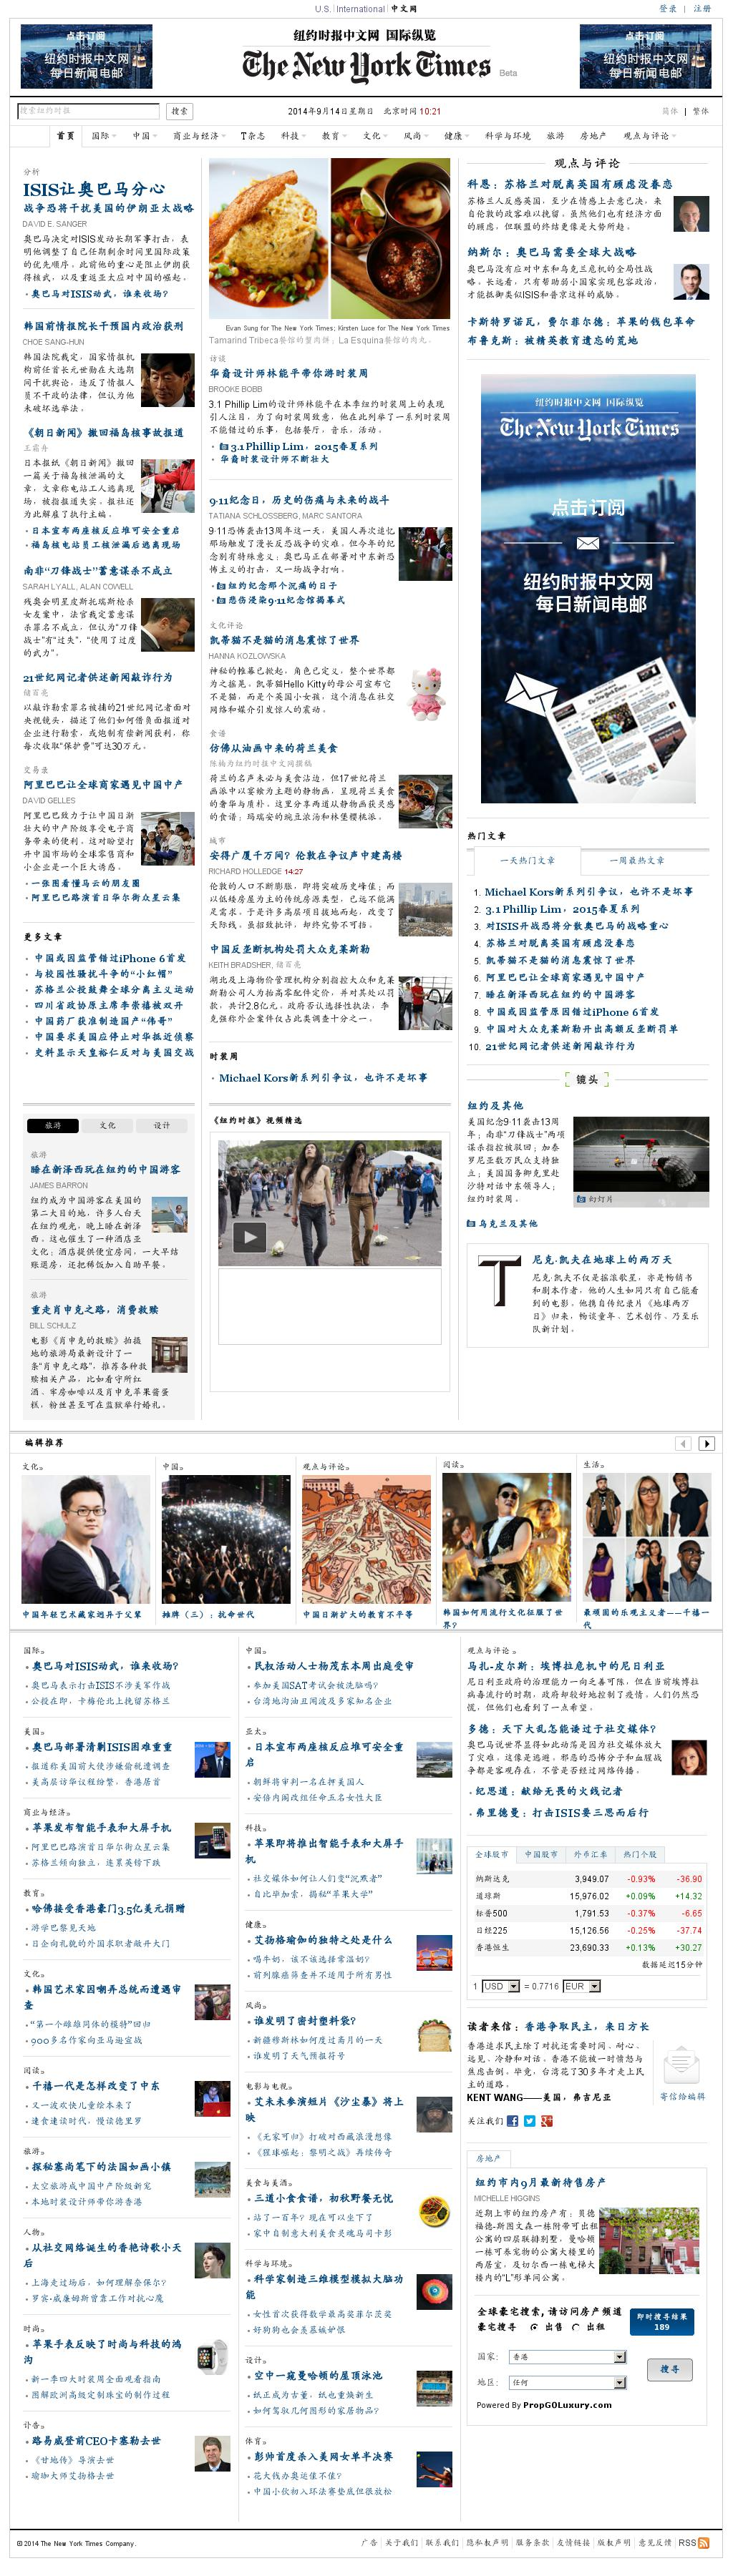 The New York Times (Chinese) at Sunday Sept. 14, 2014, 5:11 a.m. UTC